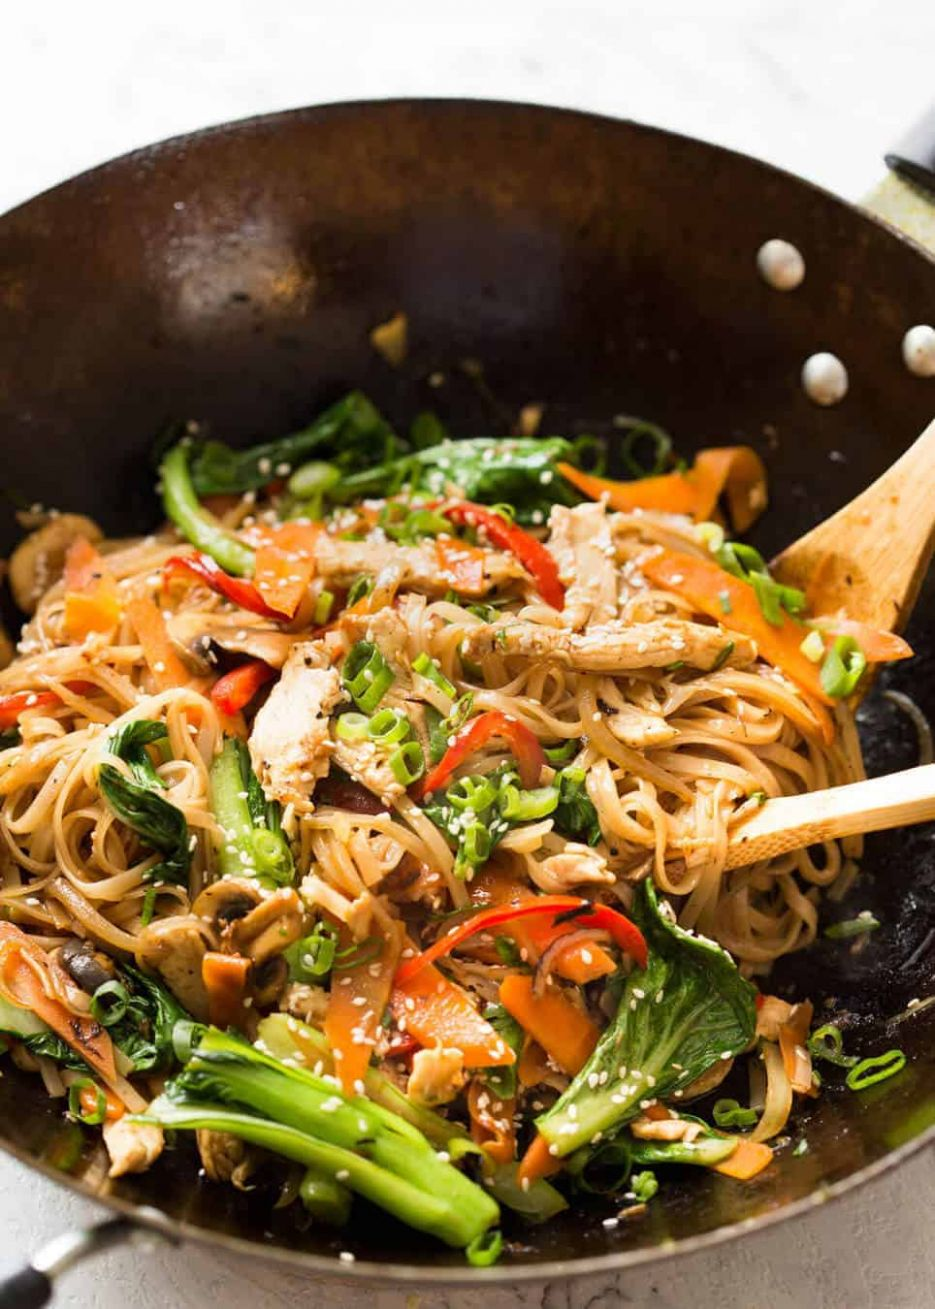 Chicken Stir Fry with Rice Noodles - Recipes Using Rice Noodles